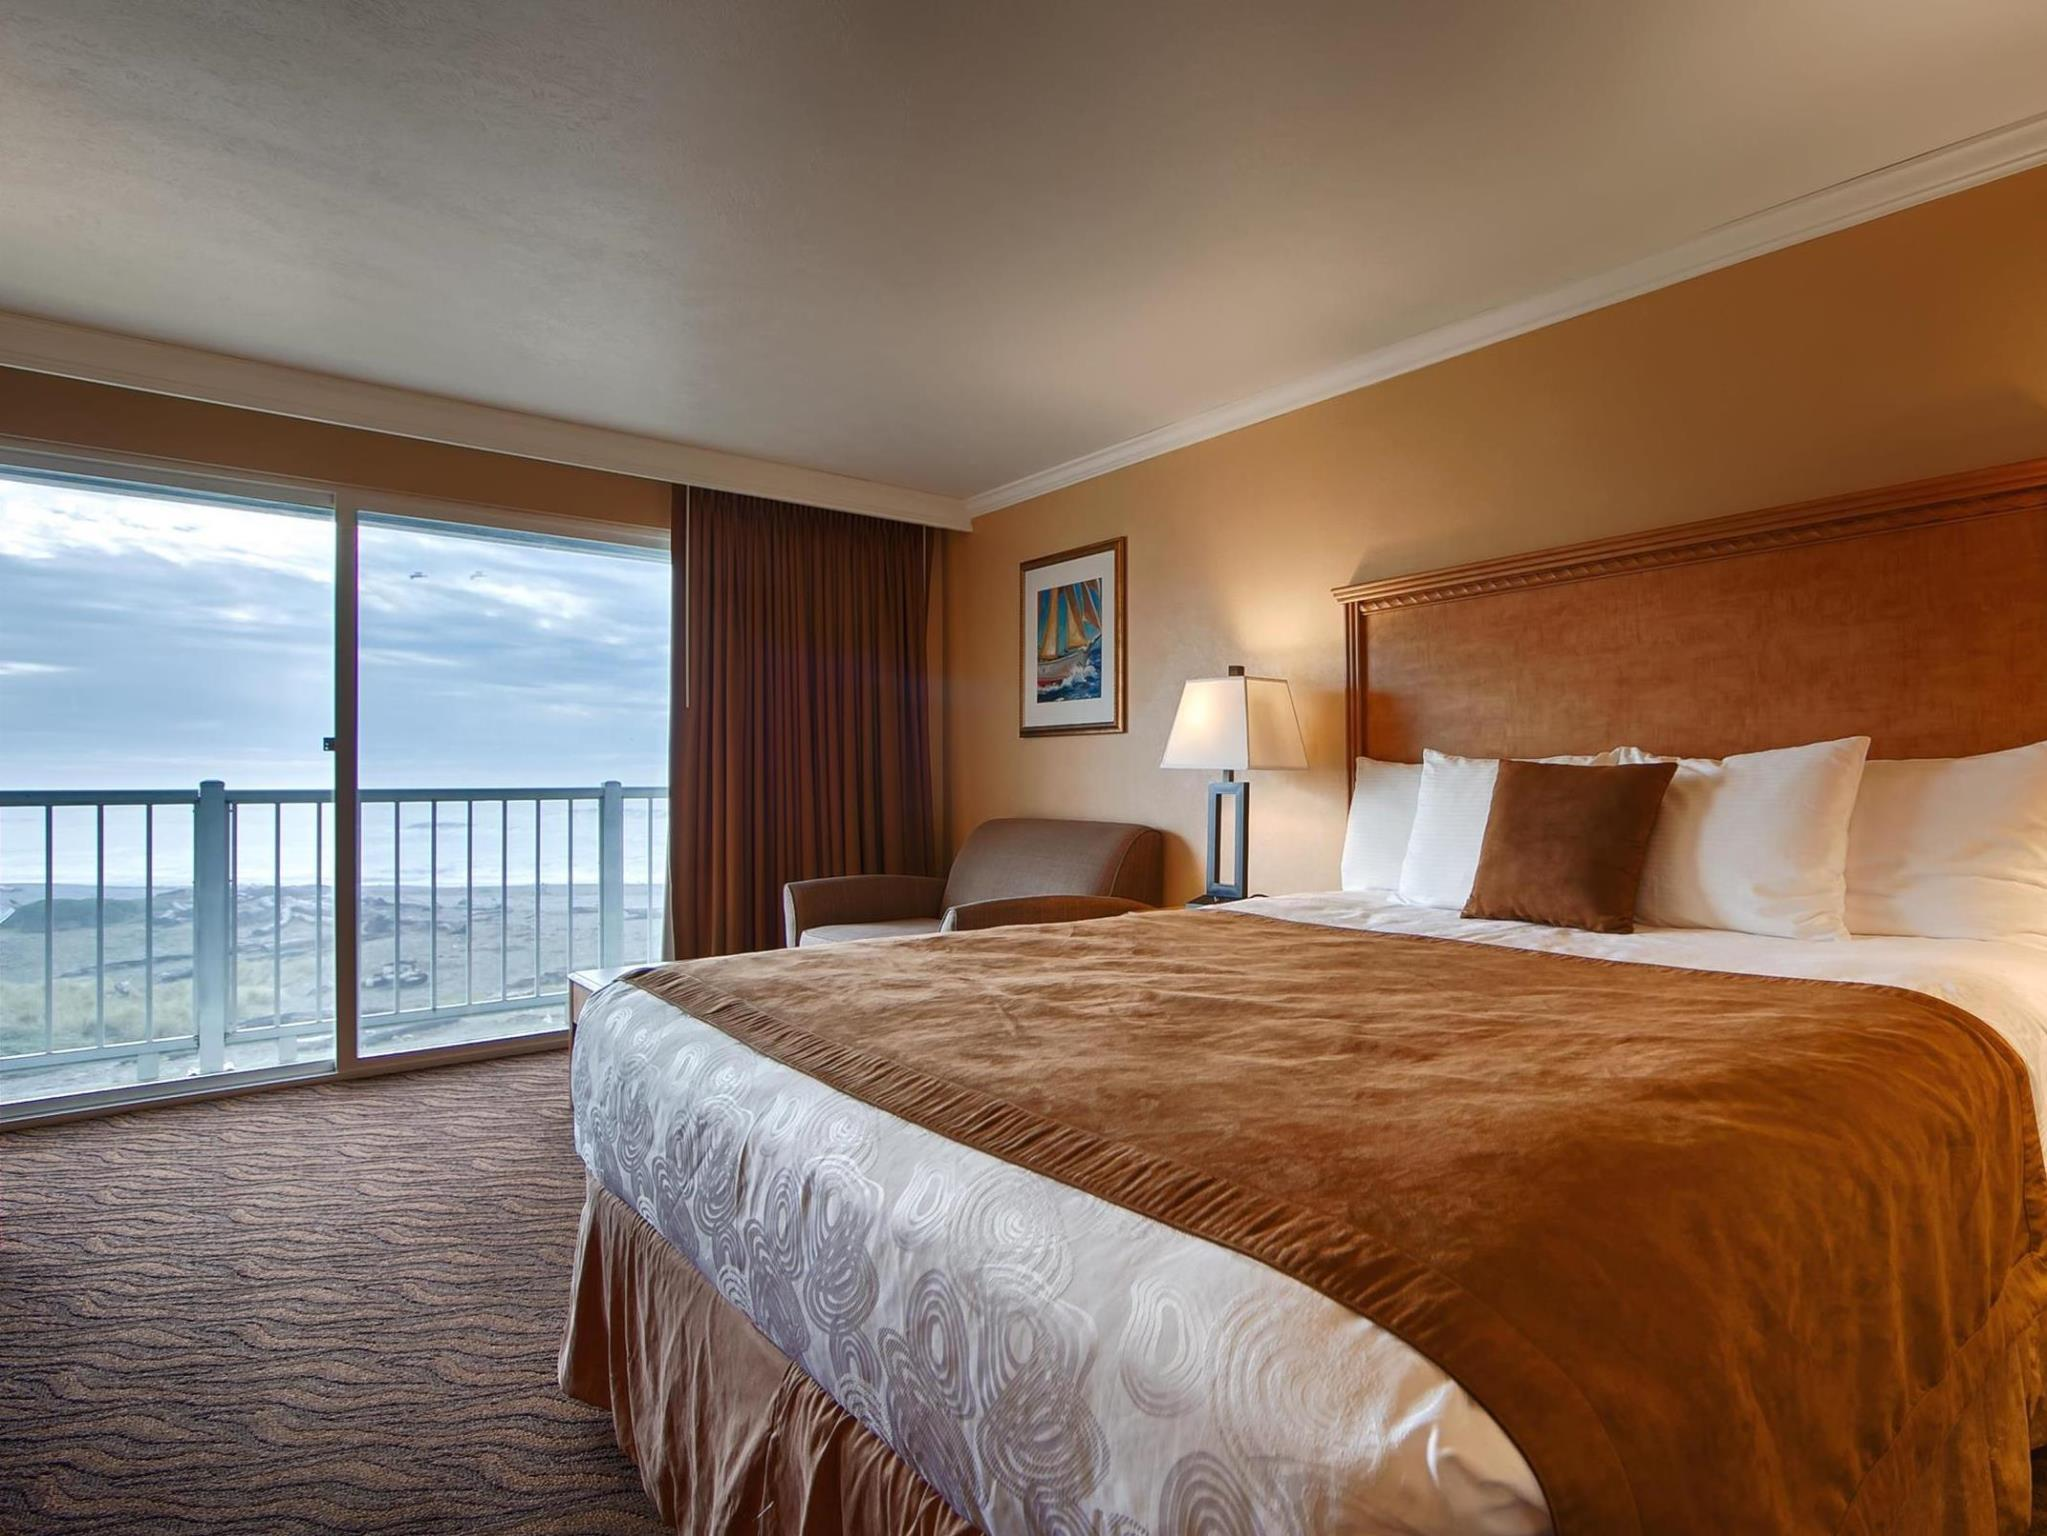 Ocean View 1 King Room